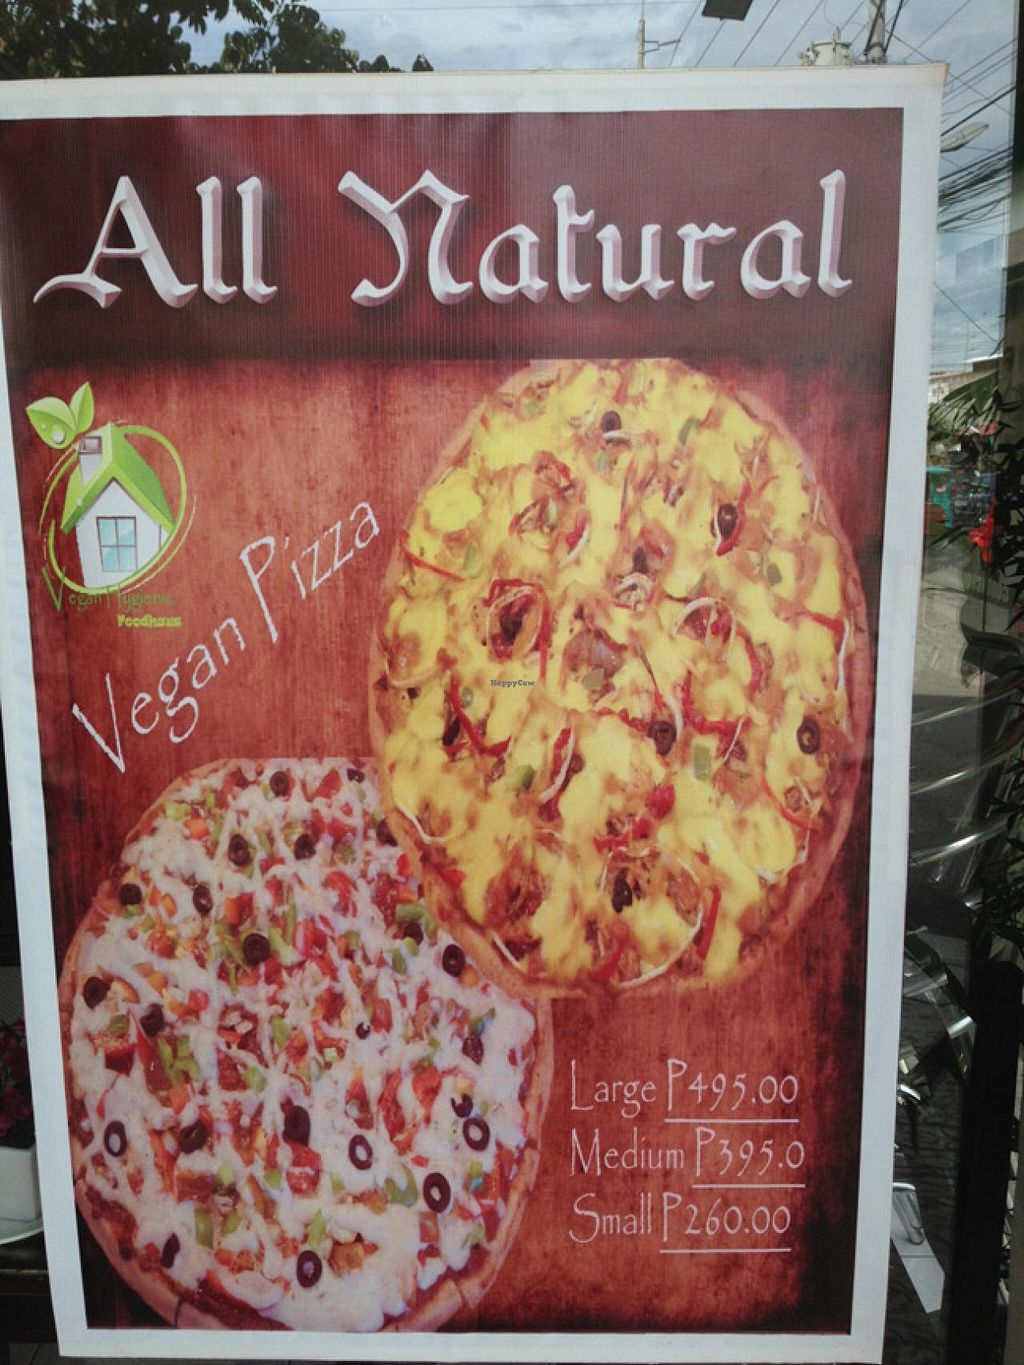 """Photo of Vegan Hygienic Foodhaus  by <a href=""""/members/profile/RandyC_JtS"""">RandyC_JtS</a> <br/>Vegan Foodhaus pizza <br/> January 5, 2014  - <a href='/contact/abuse/image/34114/61805'>Report</a>"""